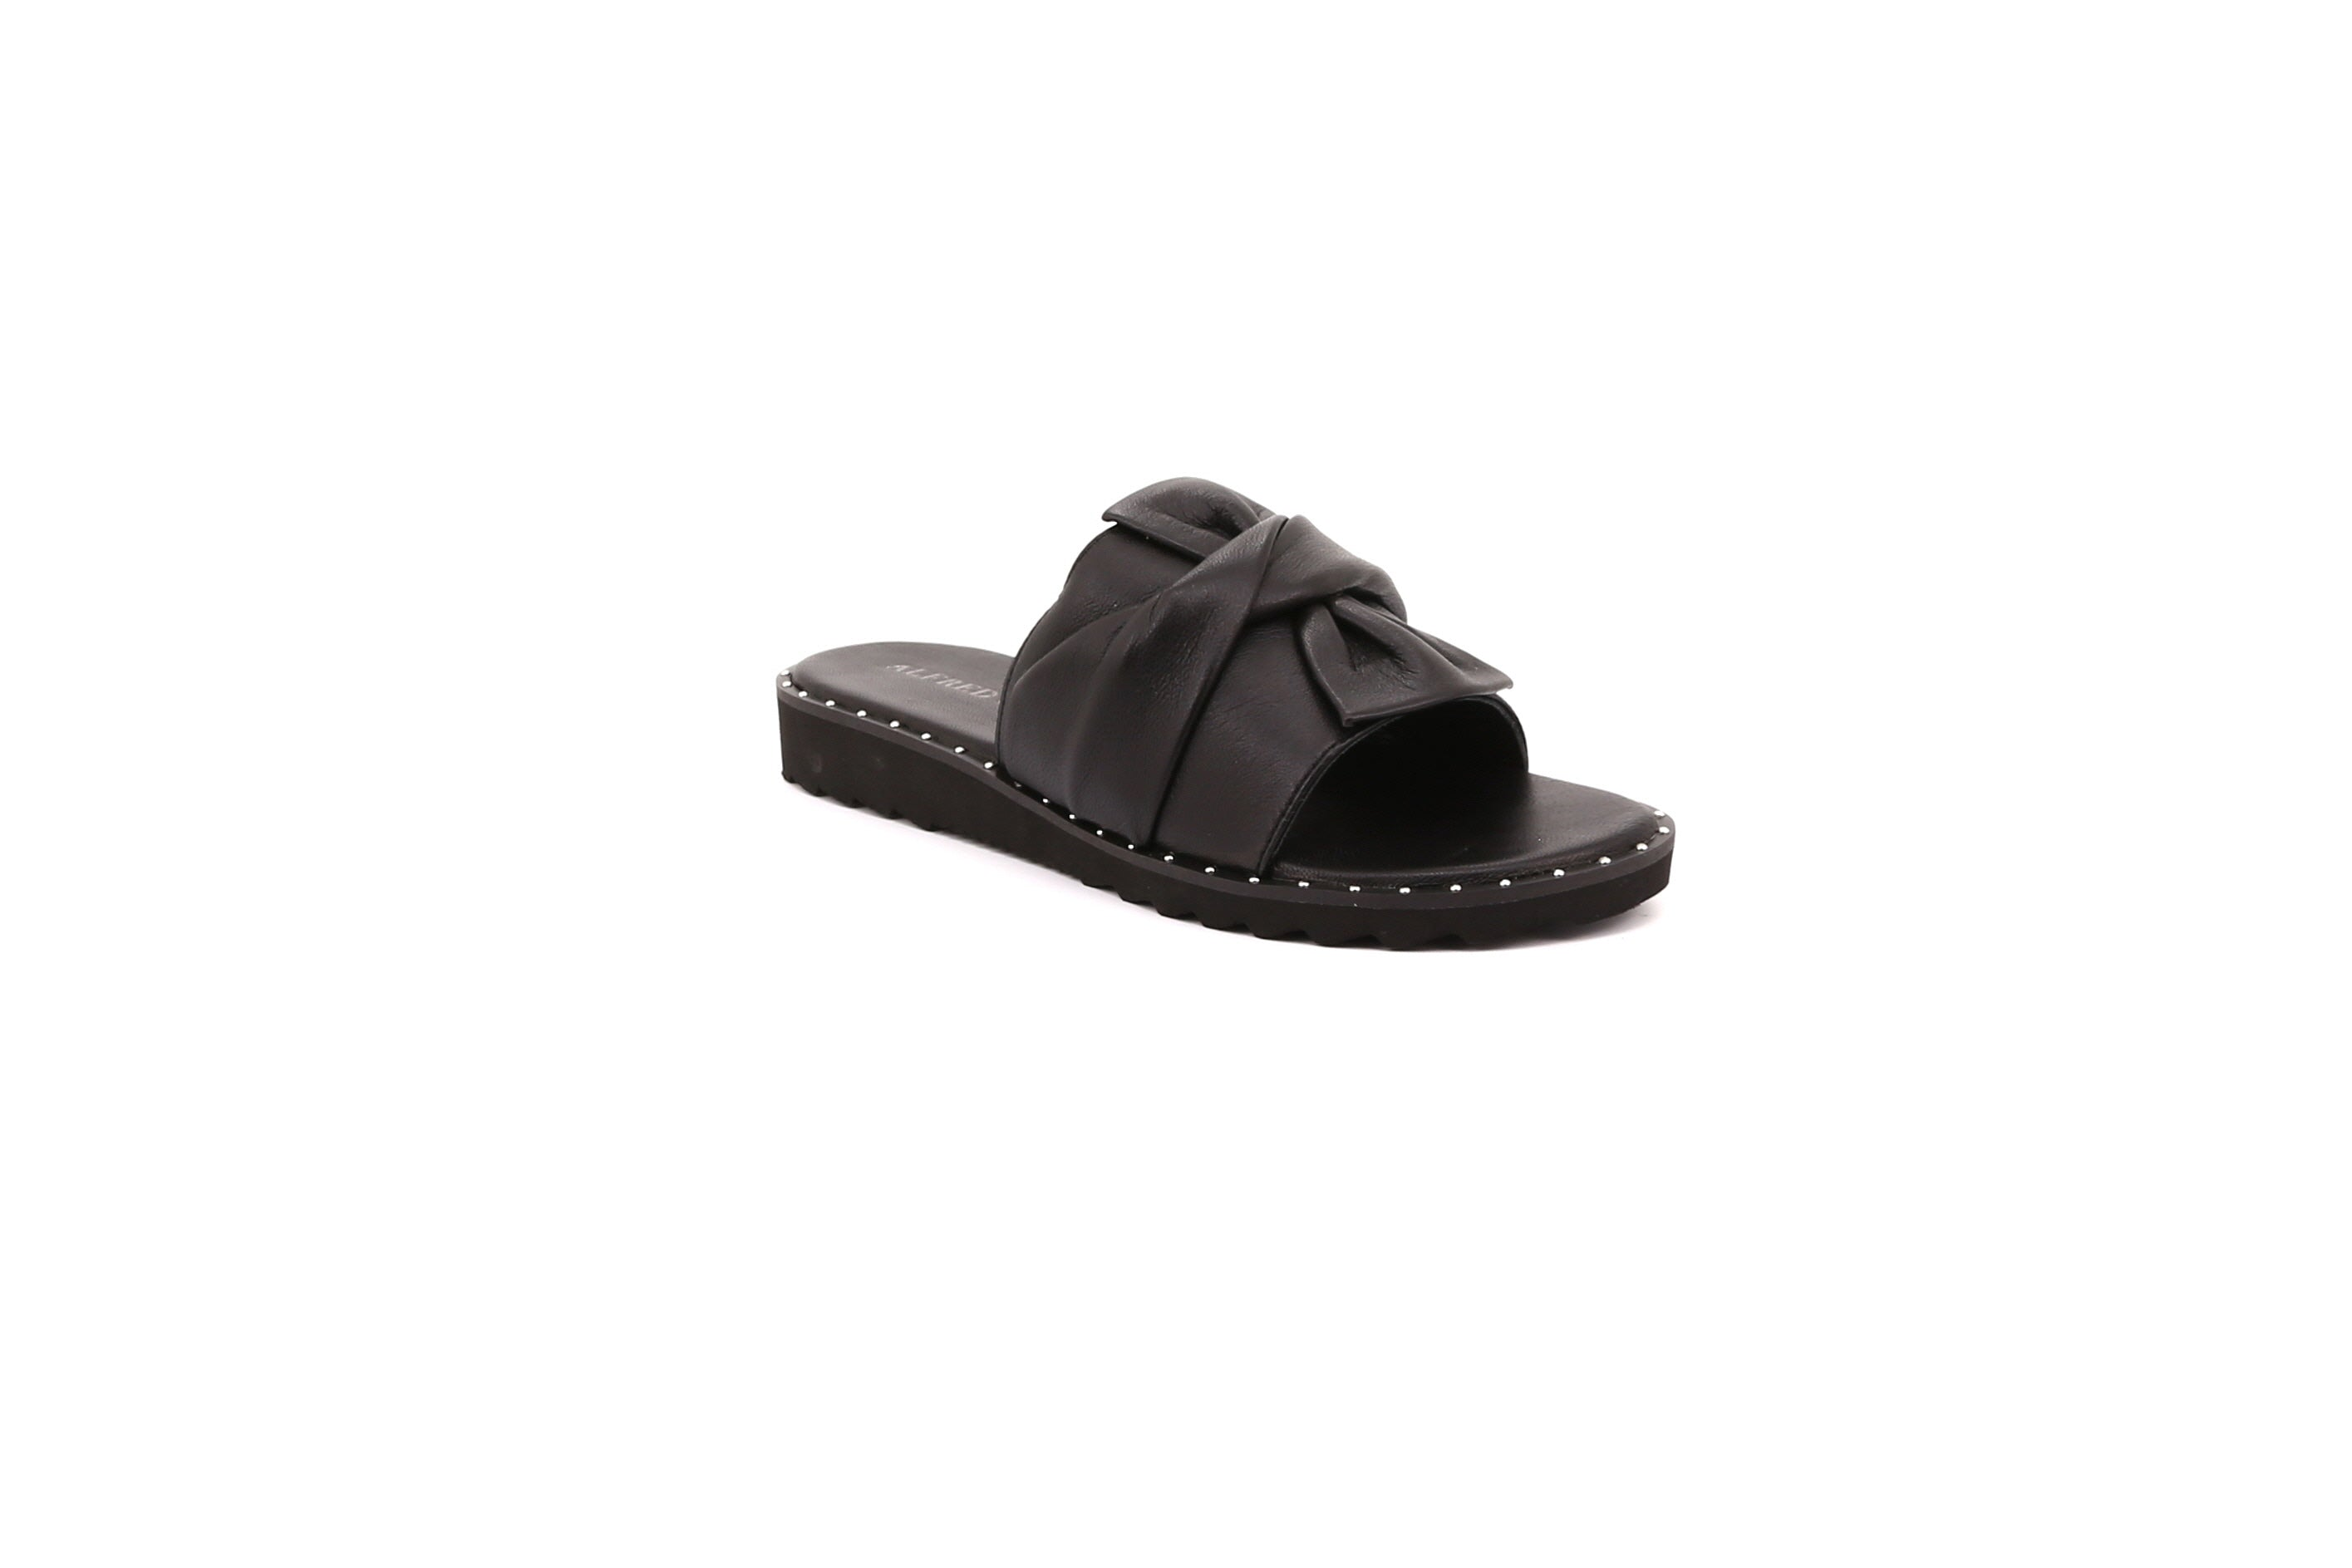 Olivia Women's Sandals Leather with EVA Soles - Alfred Cloutier Ltd. - Canada